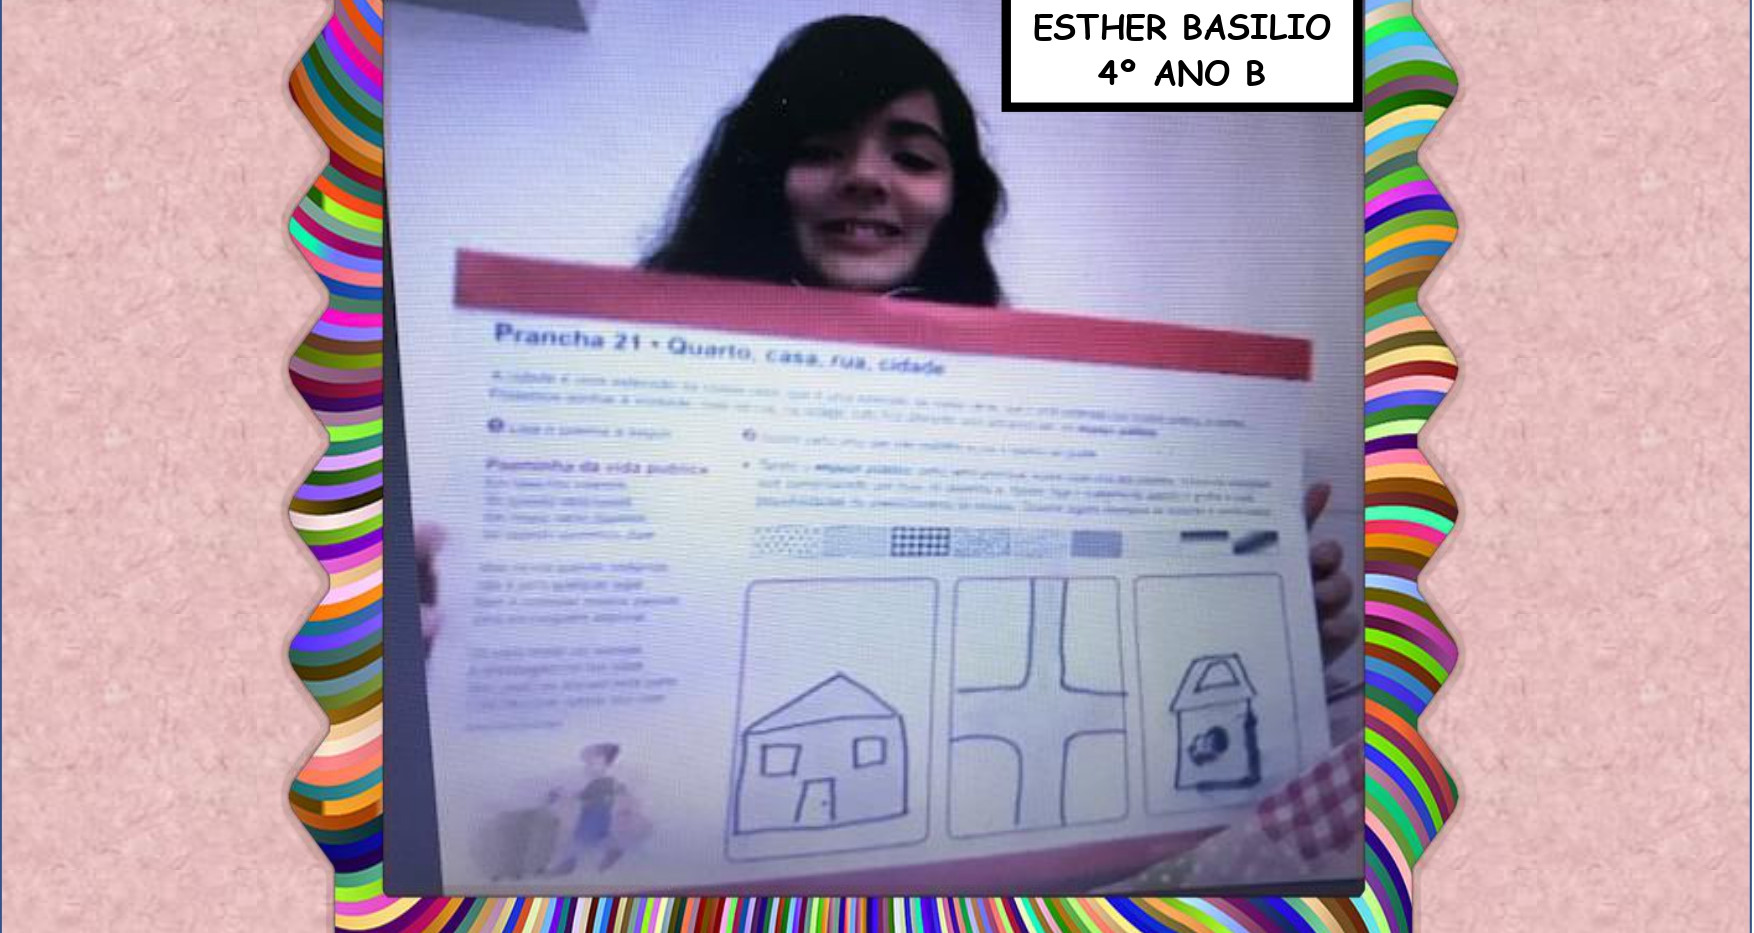 Esther_page-0001.jpg